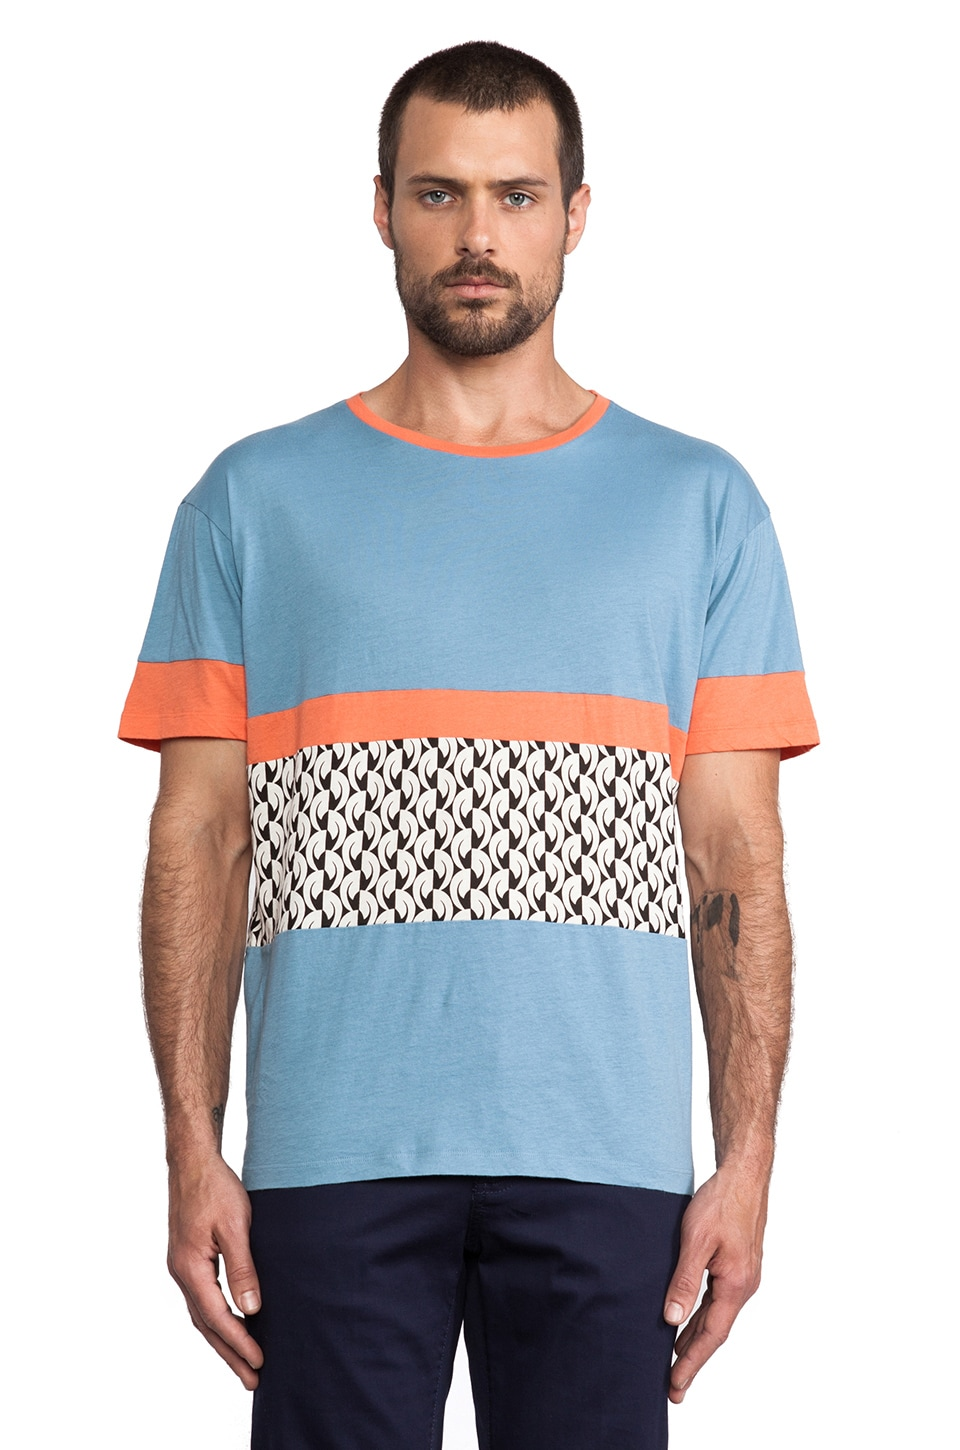 Marc by Marc Jacobs Redondo Tee in Ore Blue Multi